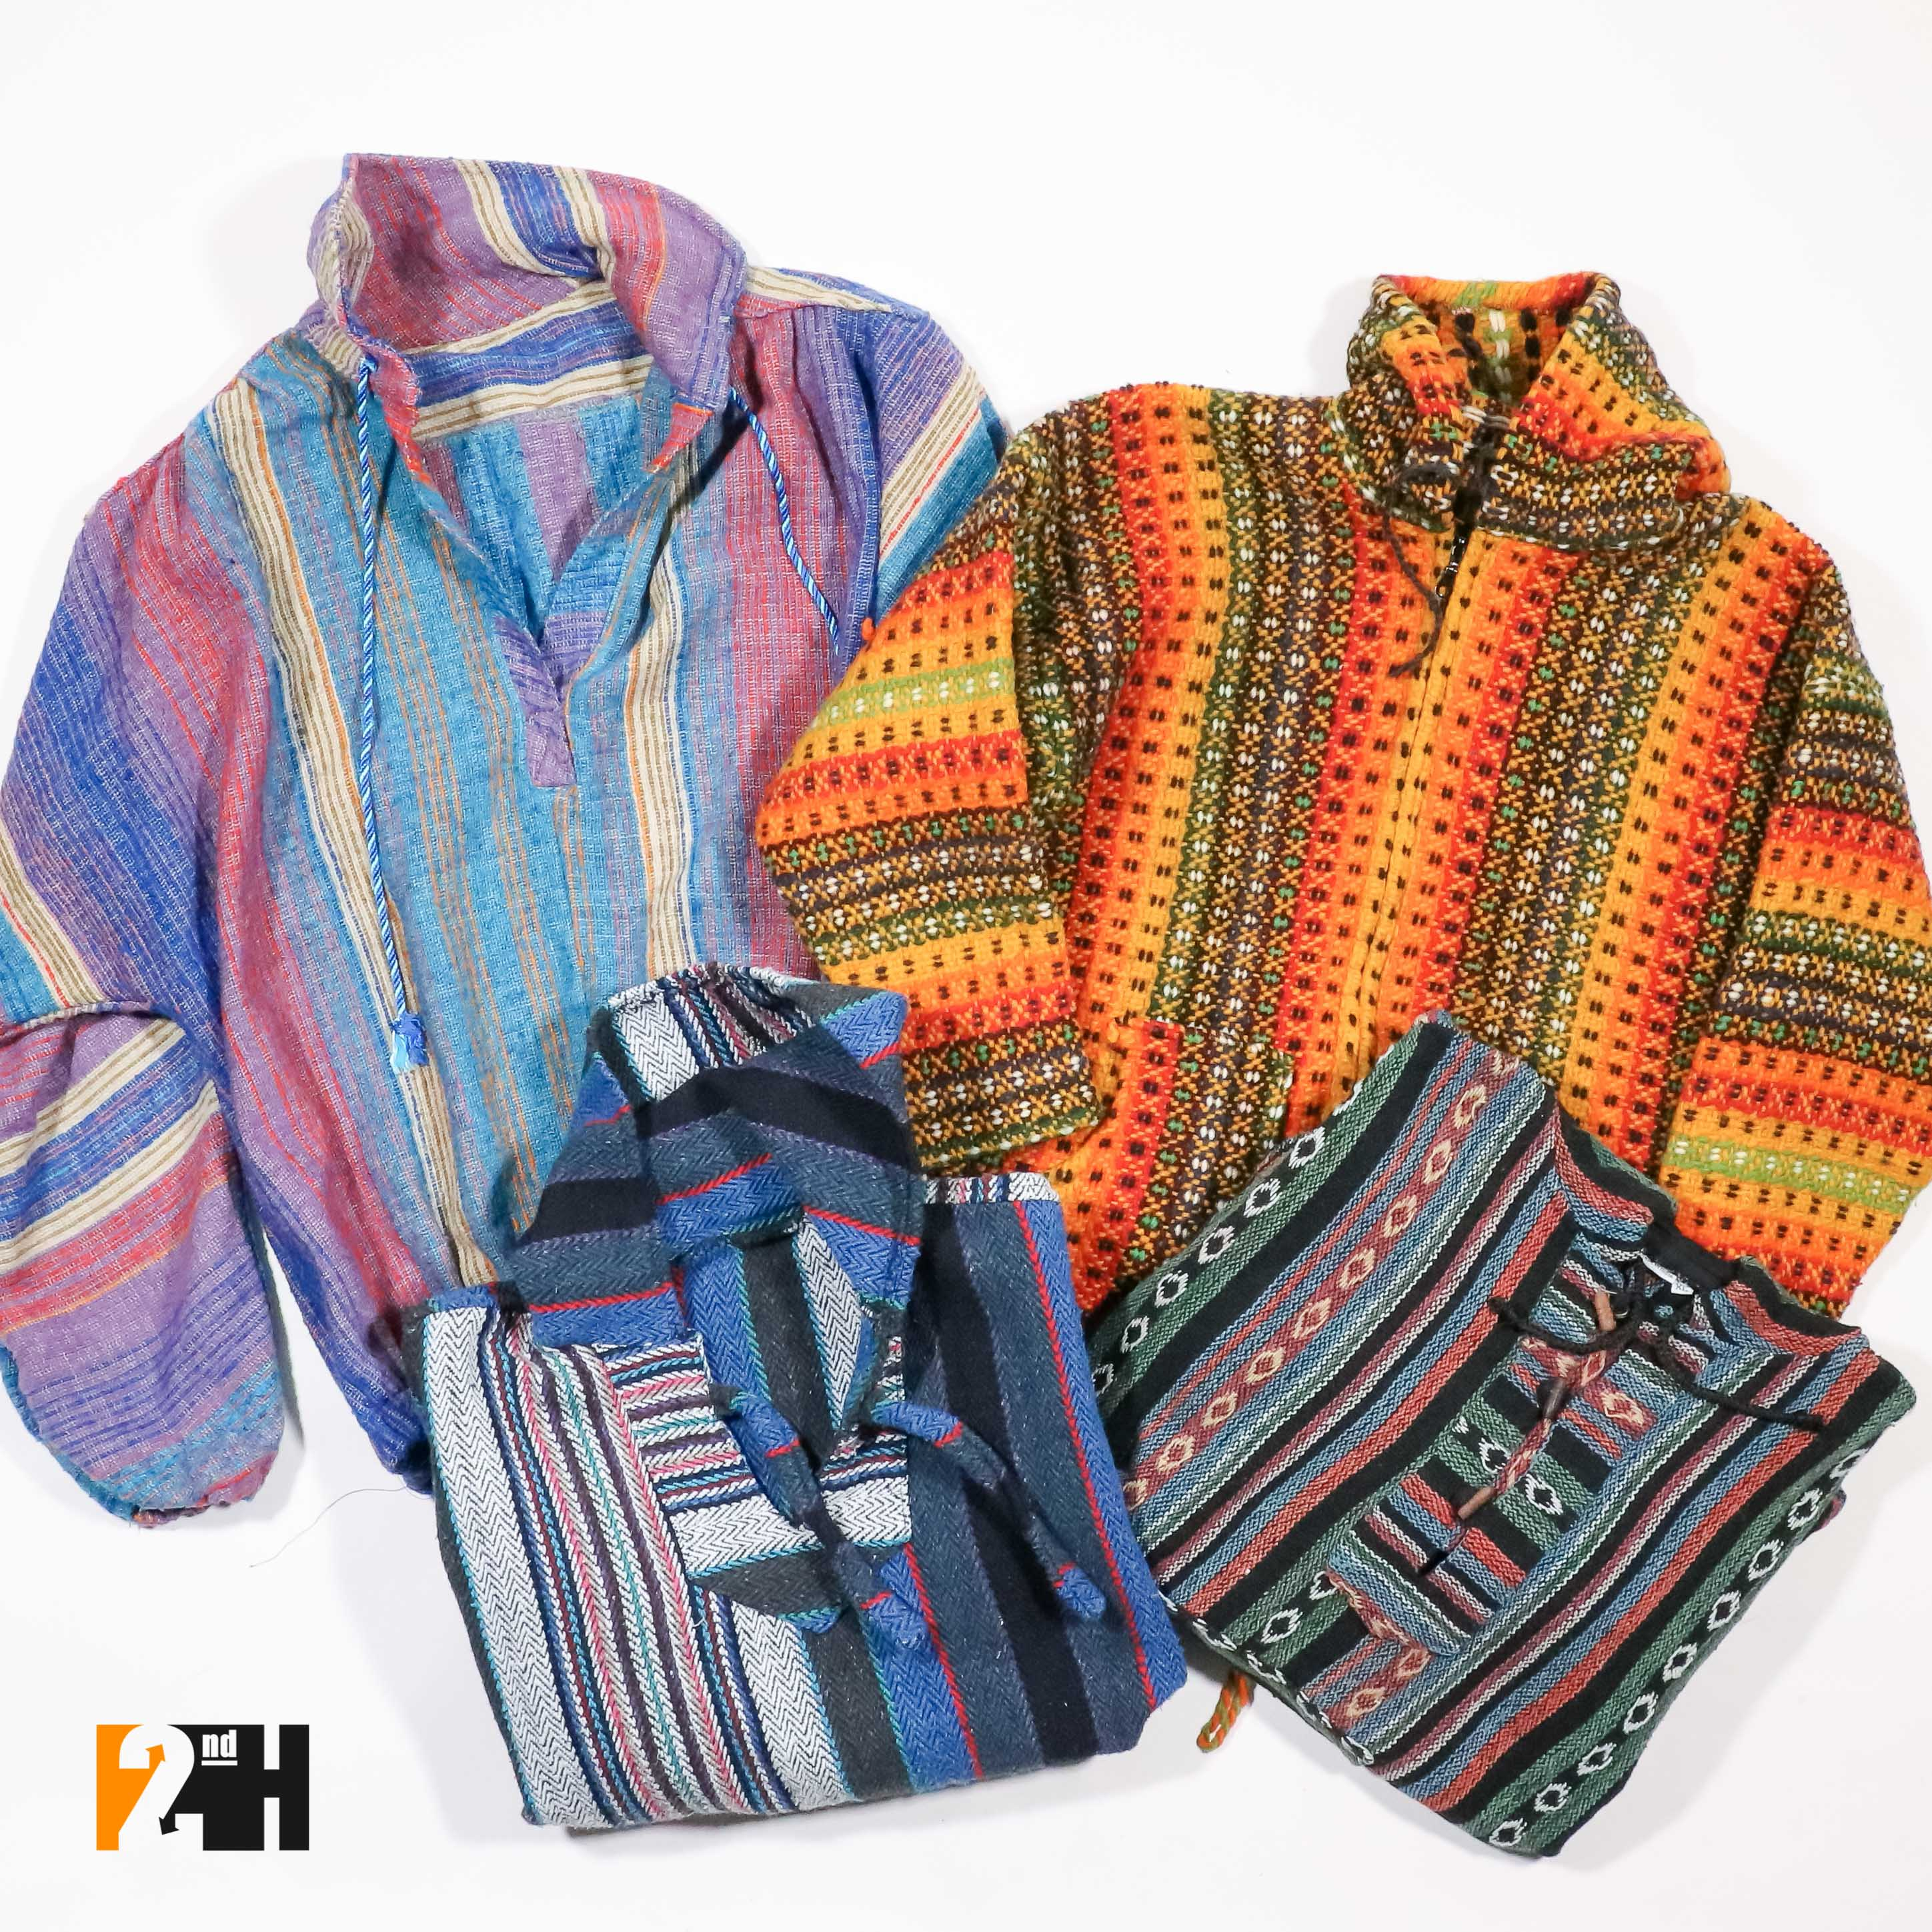 Second hand vintage clothing online